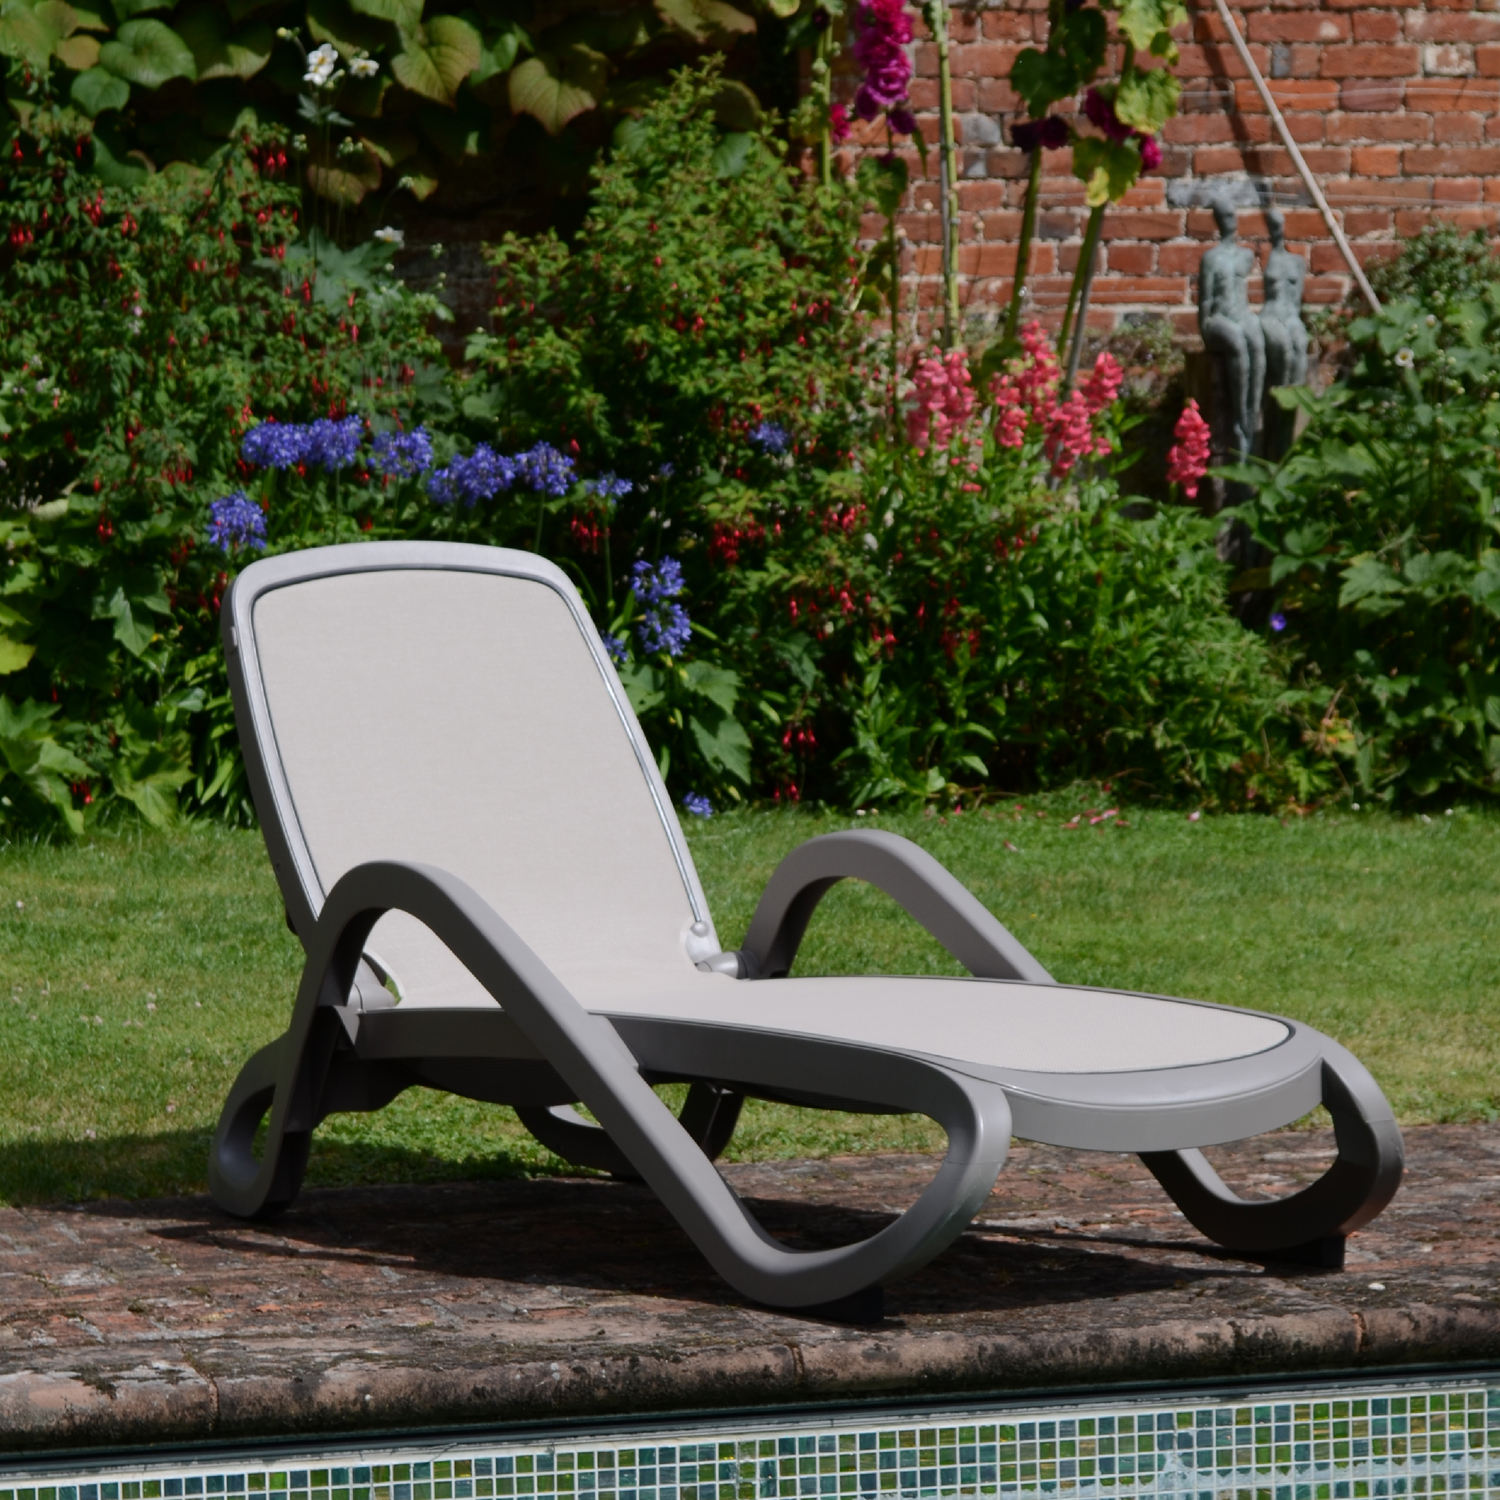 Nardi Alfa Turtle Dove Pack of 2 Sun Lounger - Ruby's Garden Boutique